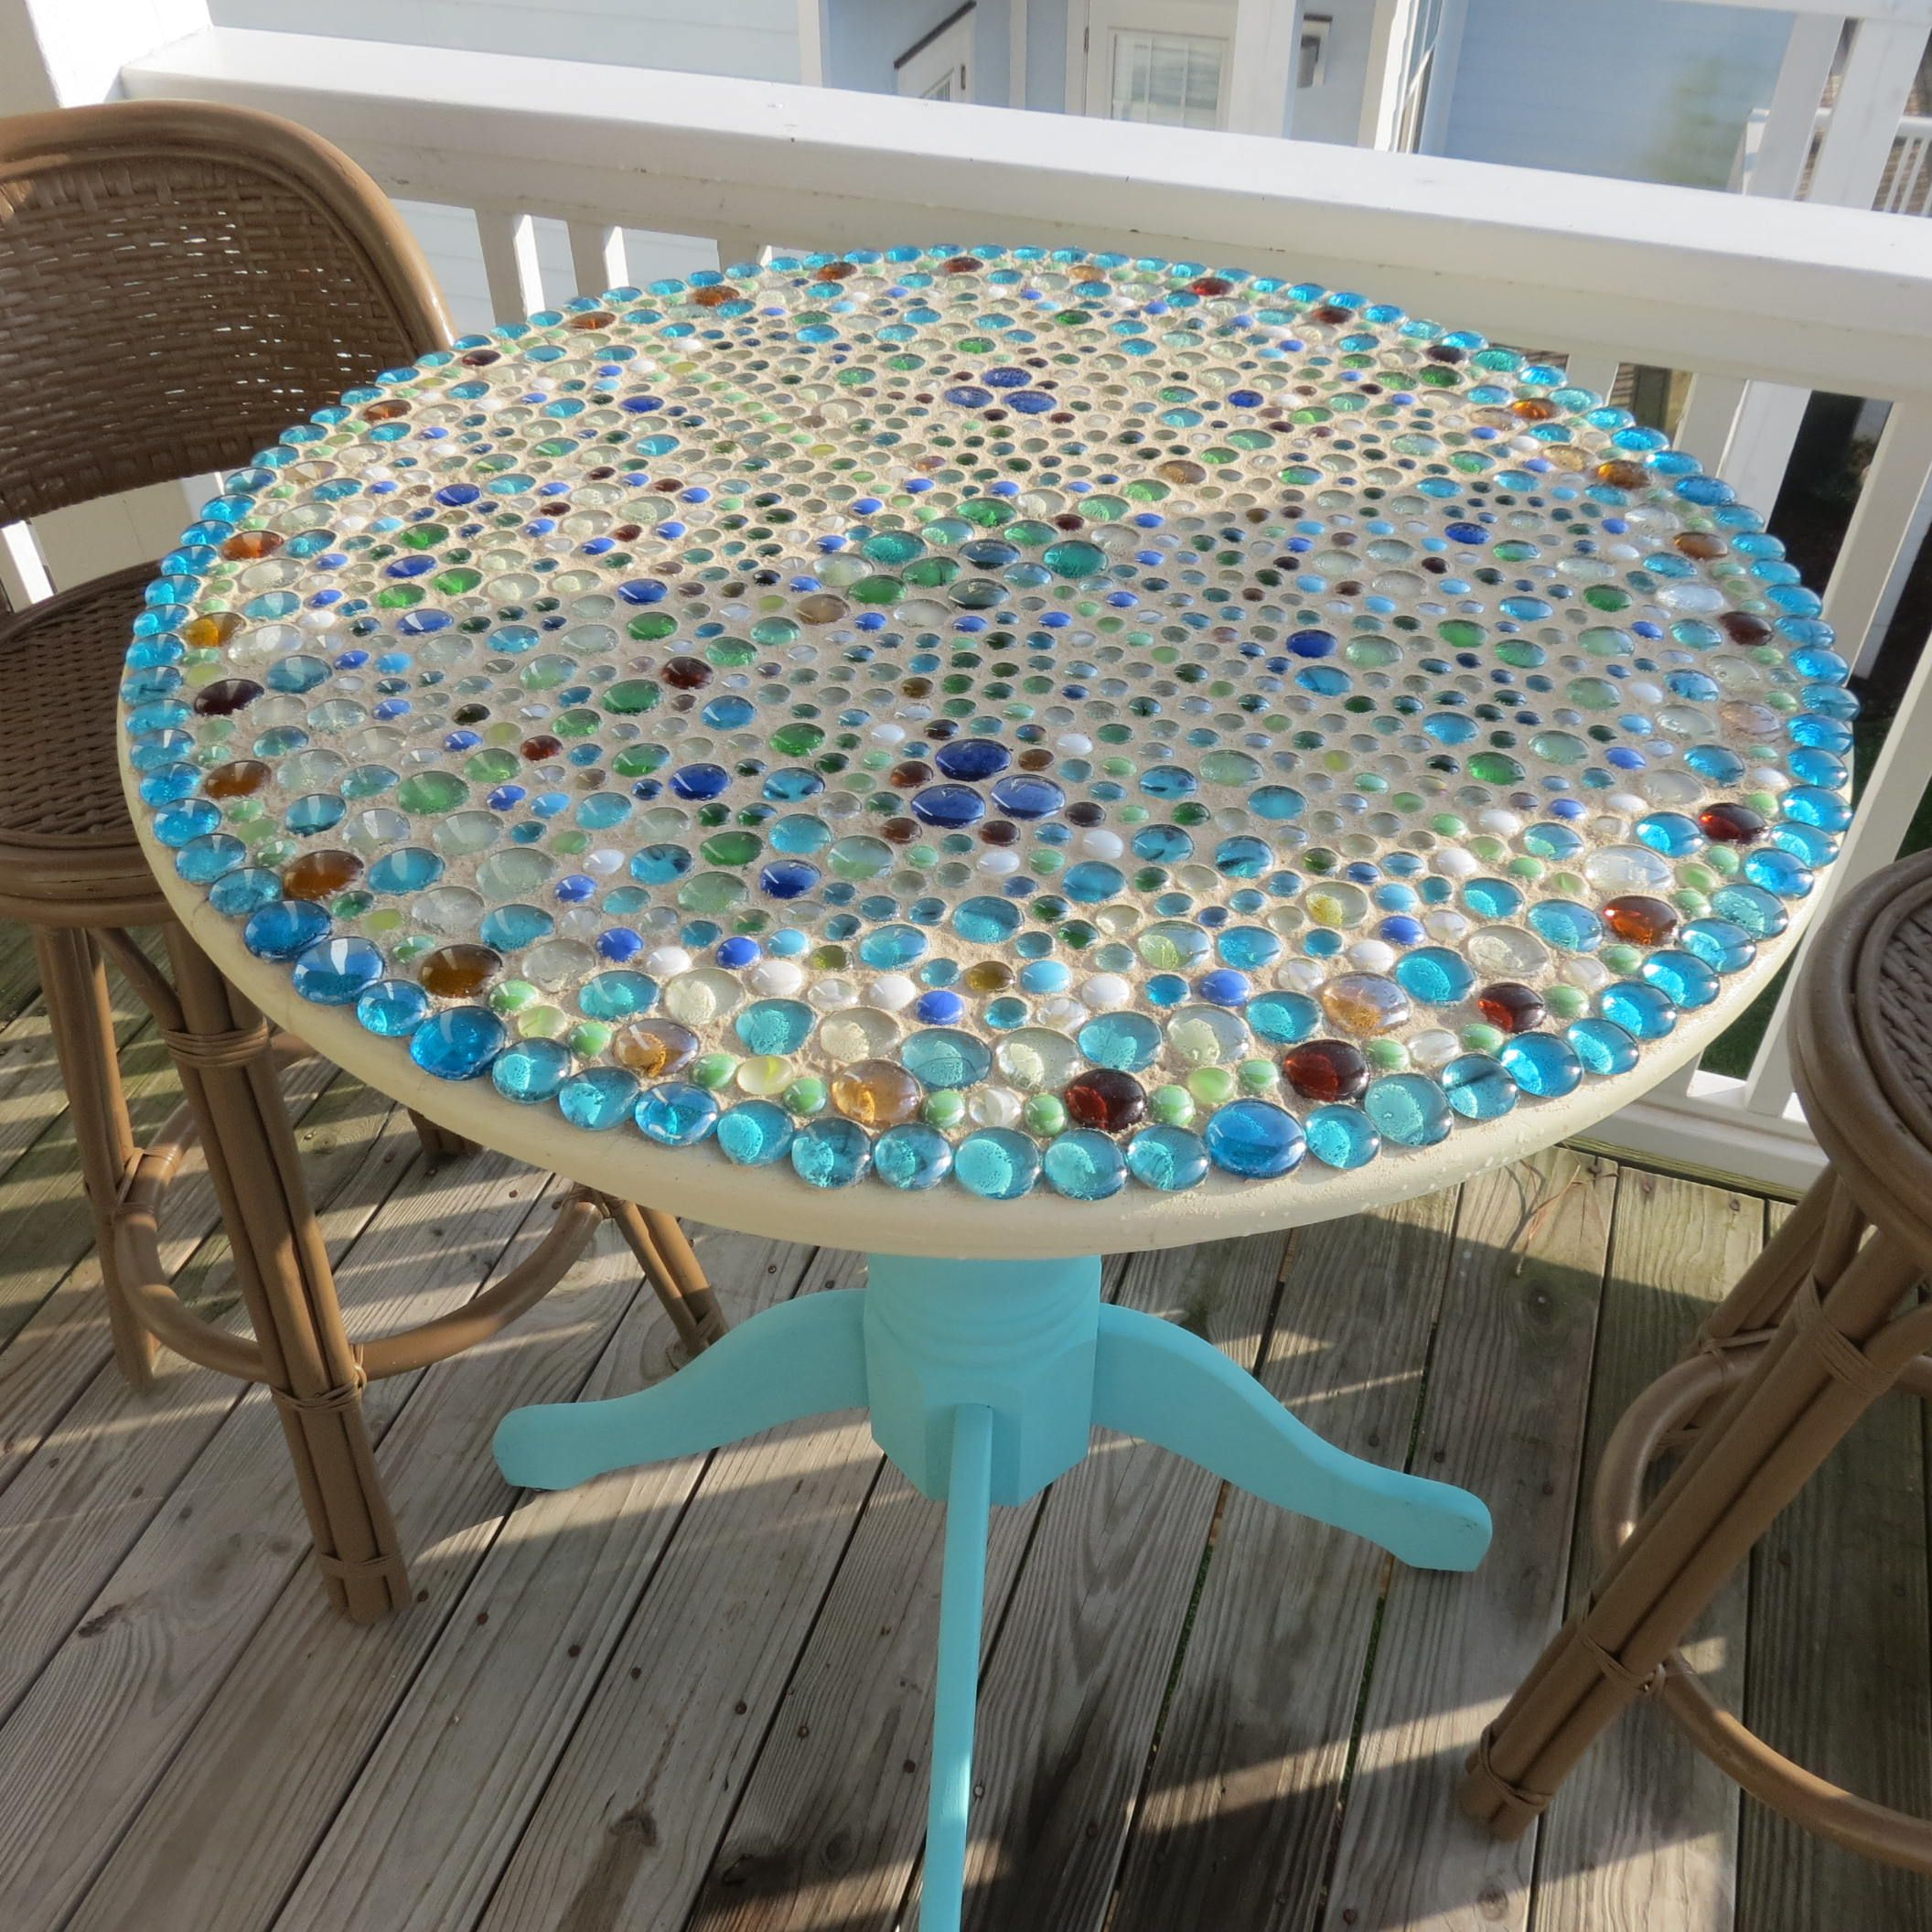 How To Make A Mosaic Table Arxiusarquitectura